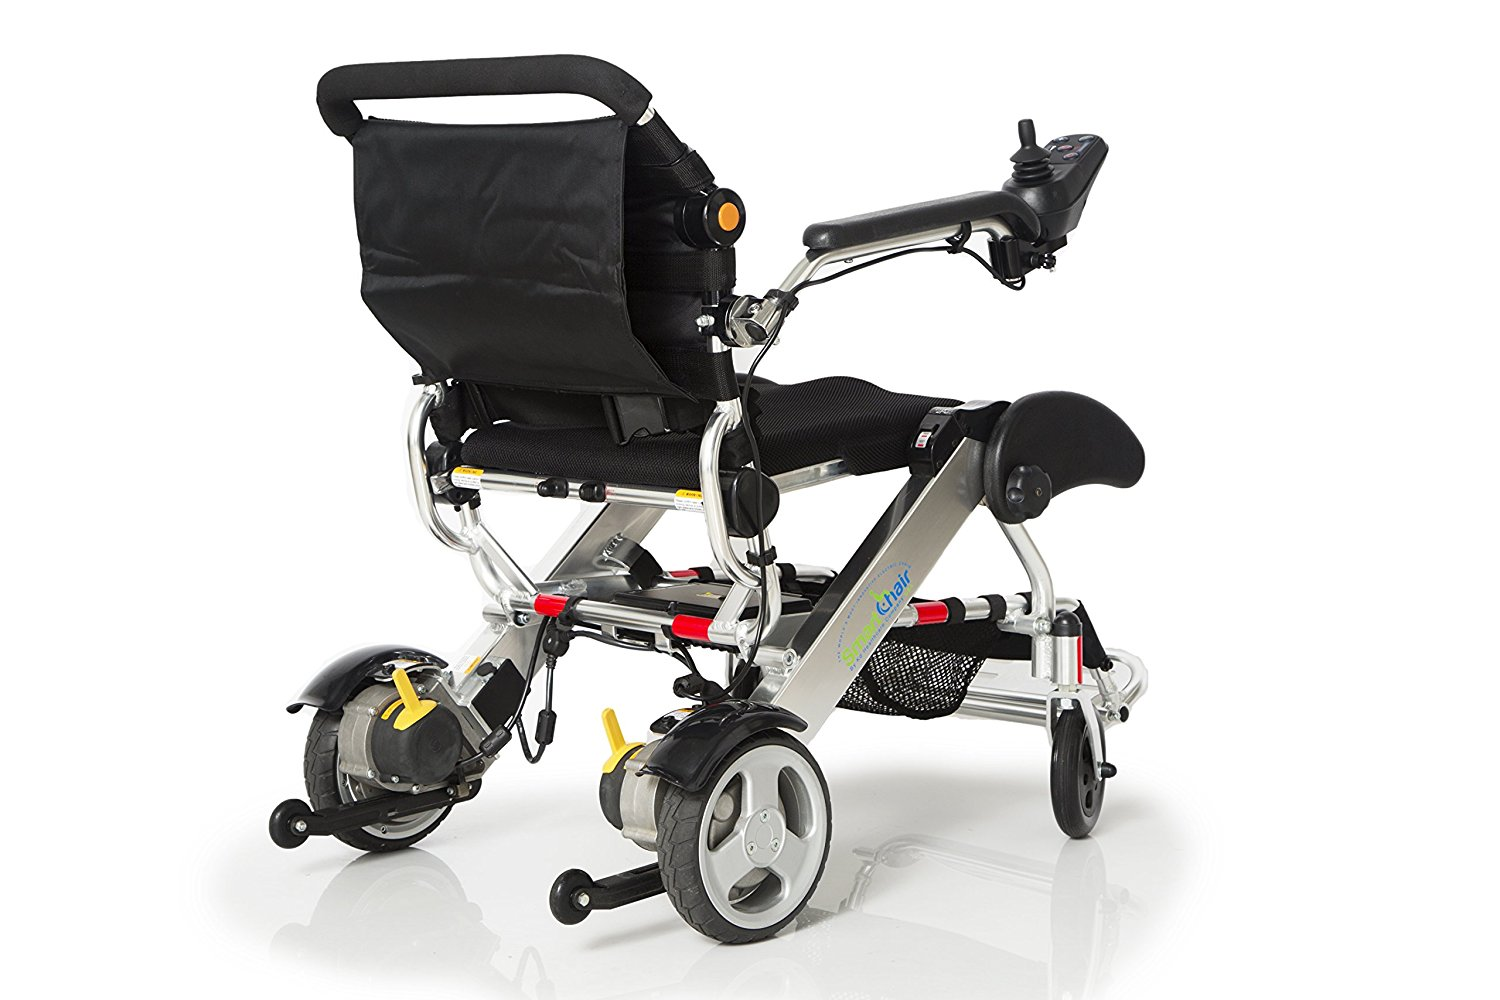 Super Compact Electric Wheelchair - KD Smart Chair - EASY FOLDING FOR TRAVELLING! *LAUNCH SPECIAL*